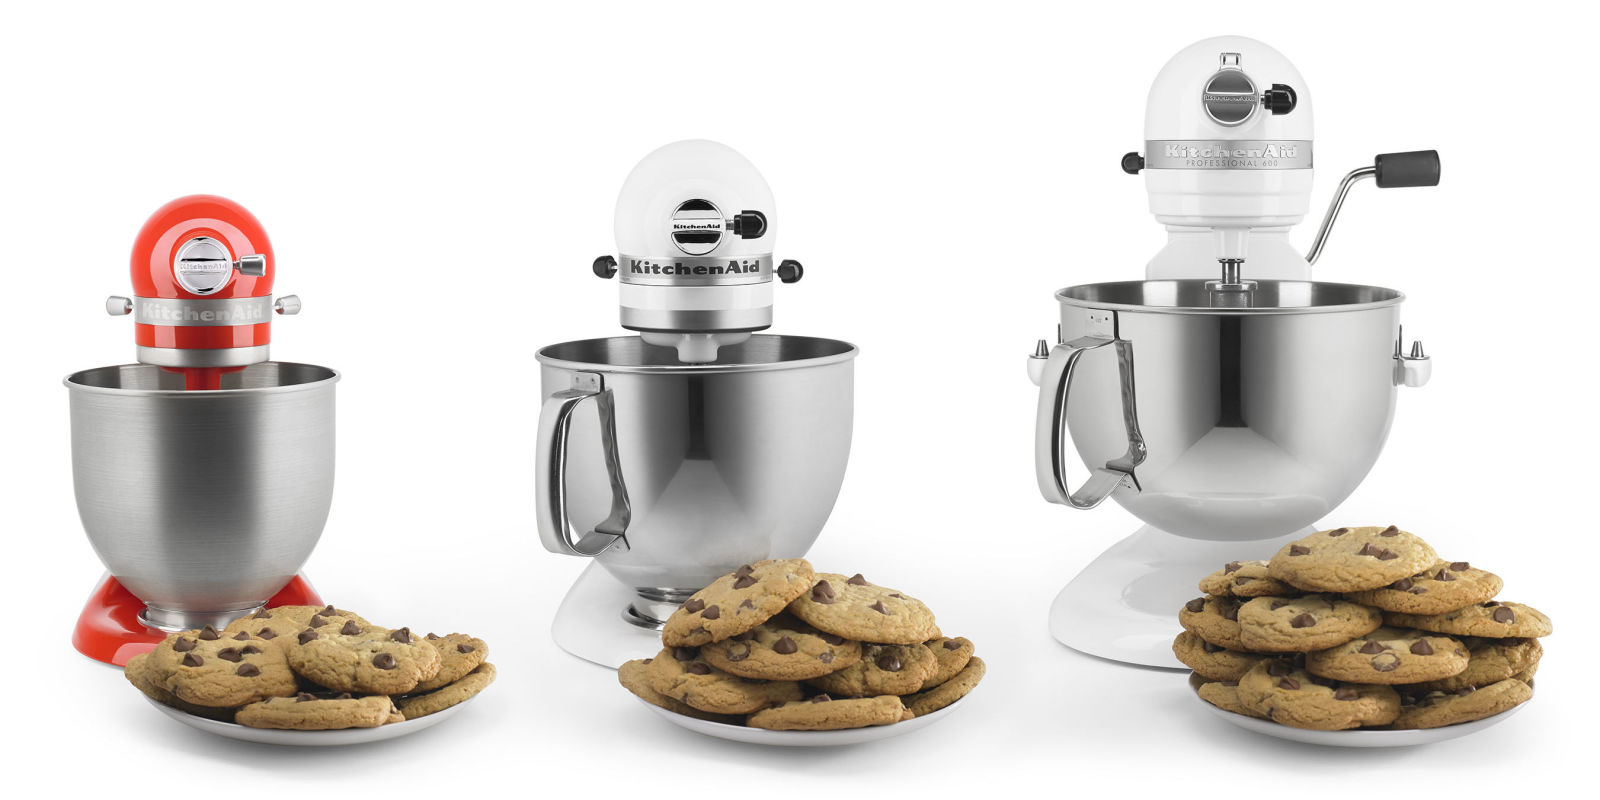 KitchenAid Launches New Mini Stand Mixer